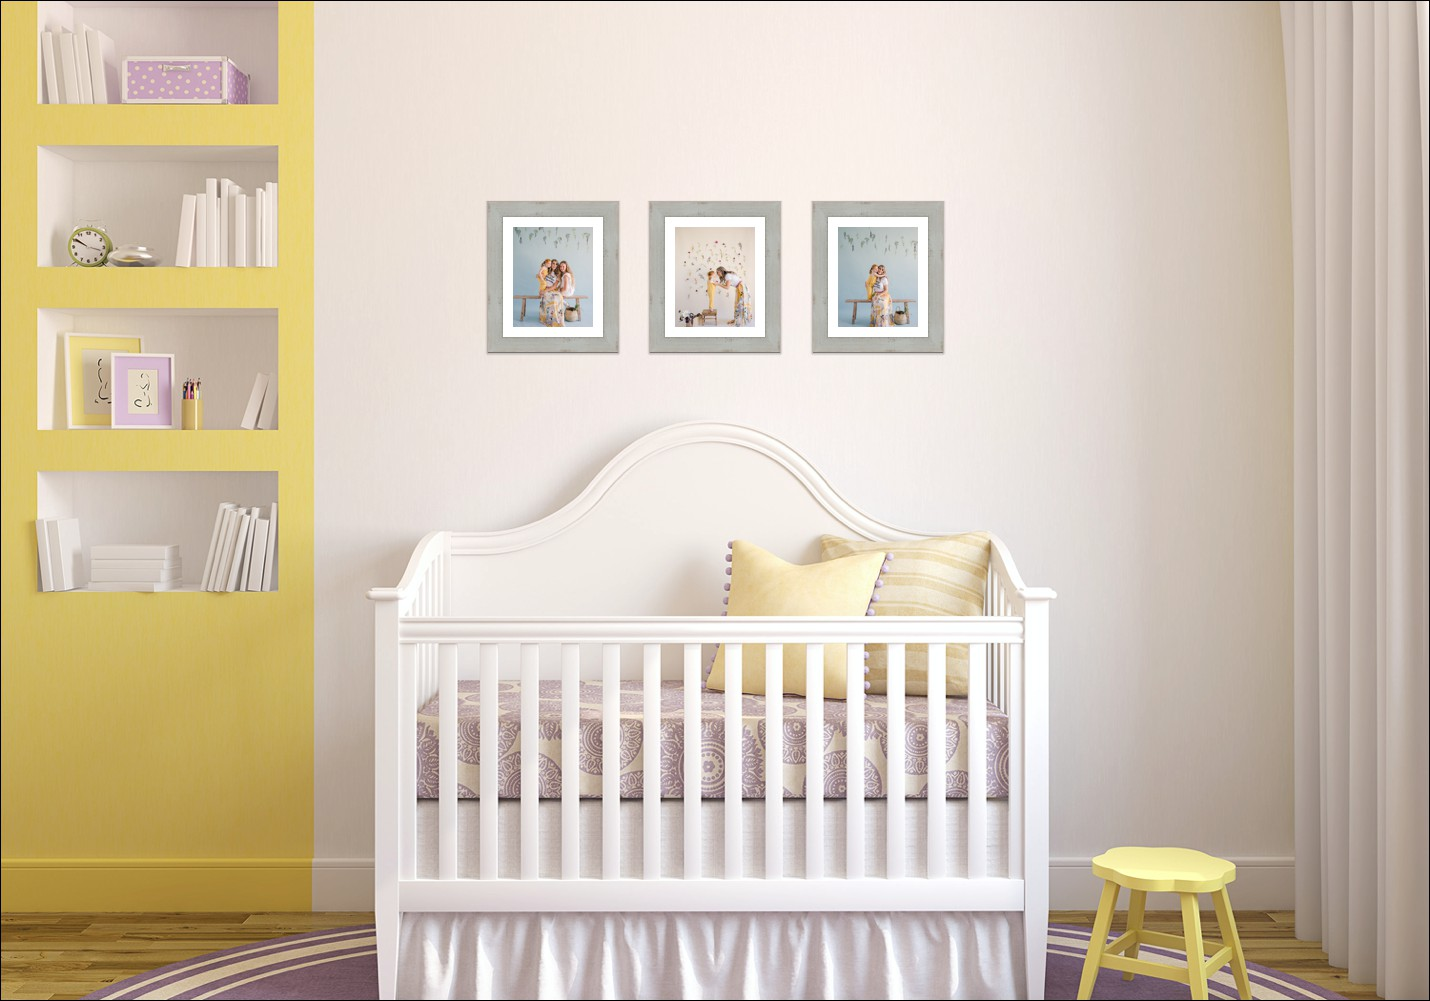 Photo of yellow nursery with three framed photos above the crib